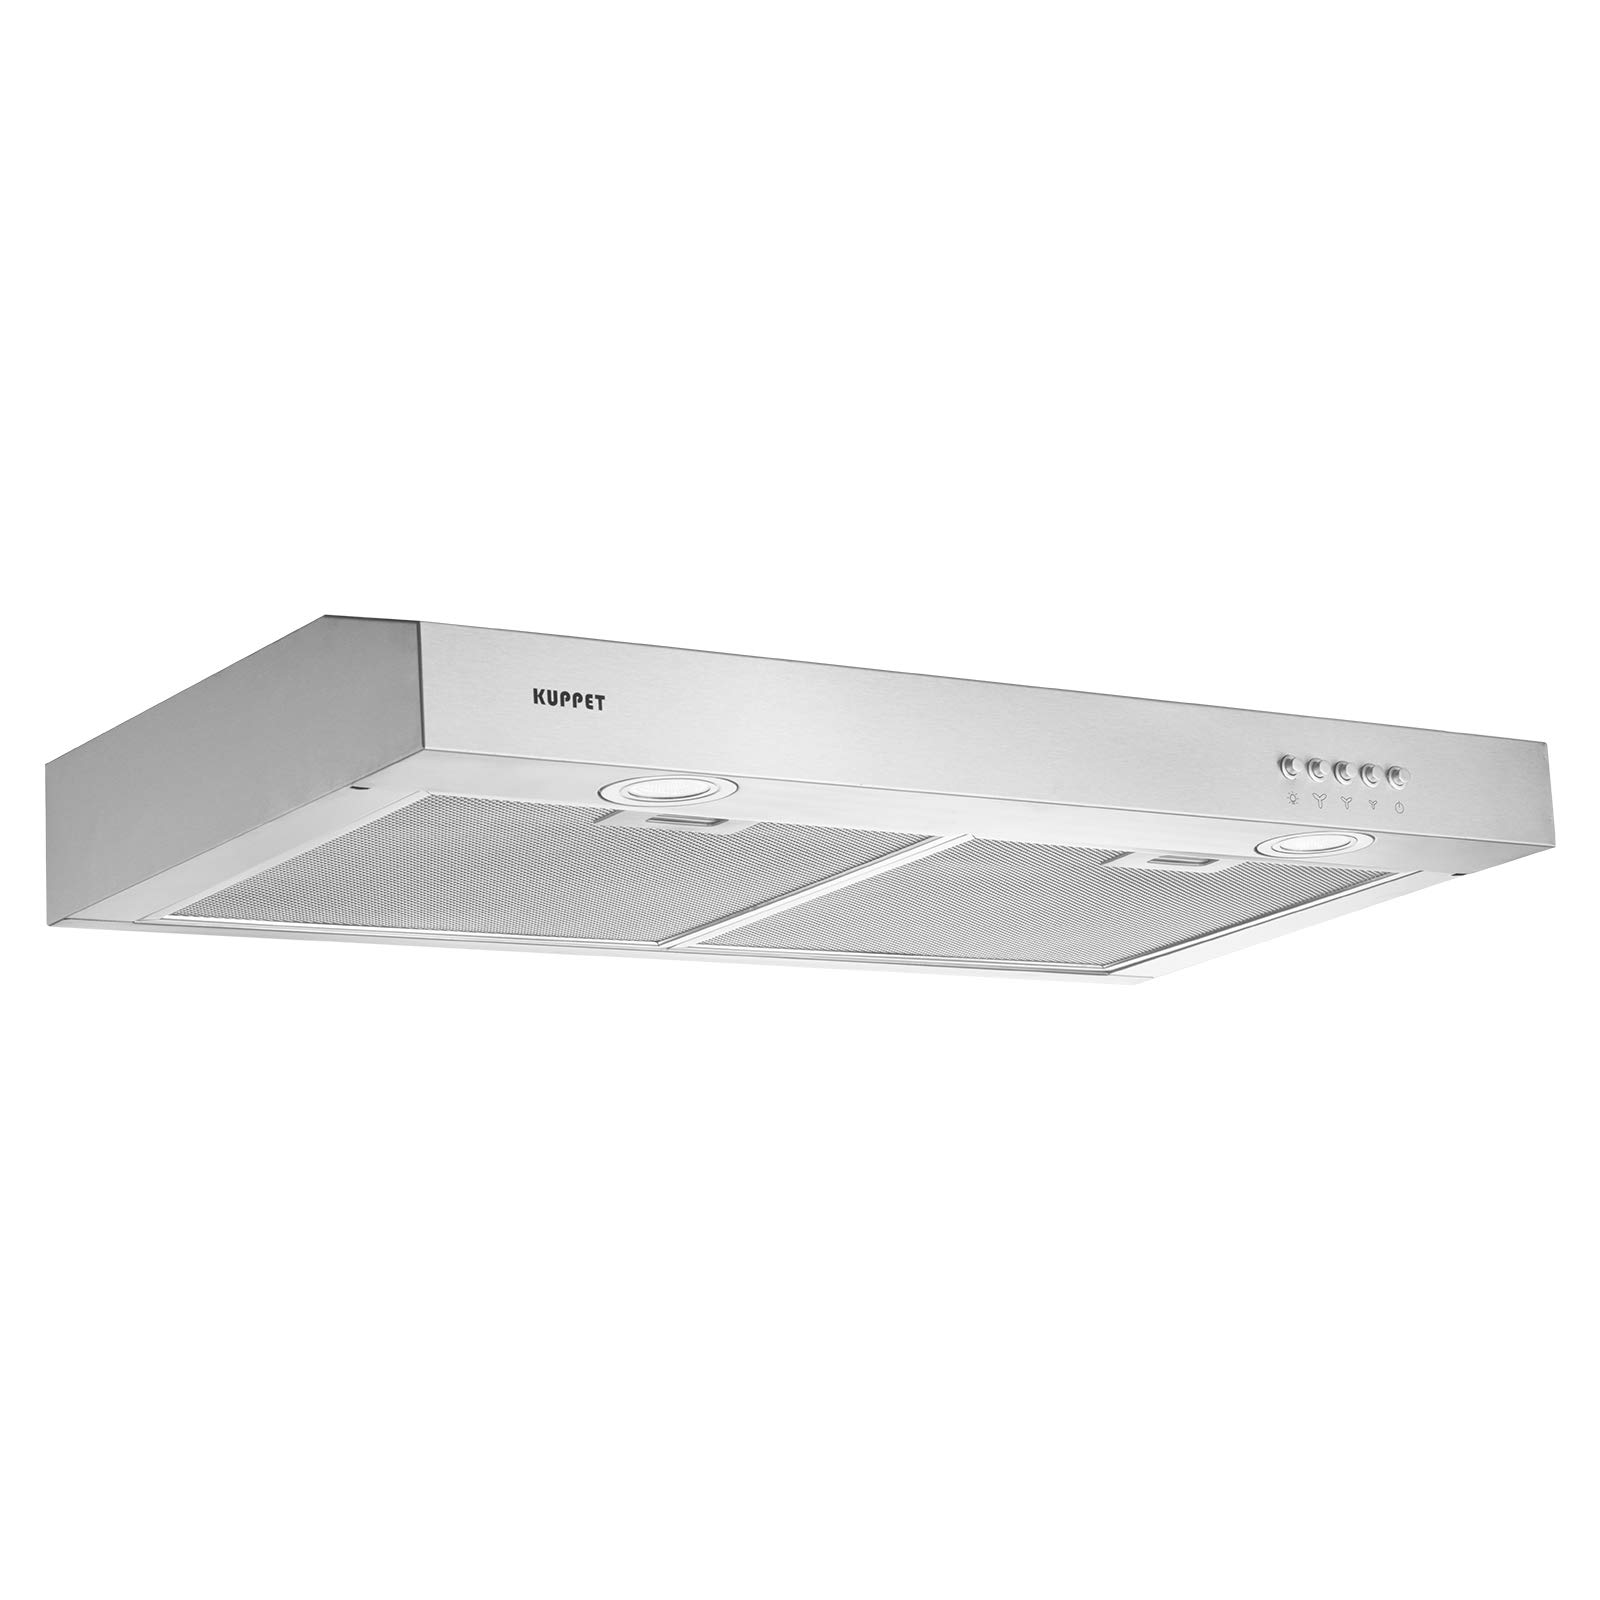 KUPPET CE53 30'' Under Cabinet Range Hood, Tempered Glass with High-End LED Lights, Aluminum Mesh Filter, Push Button 3 Speed Controls, Silver Stainless Steel